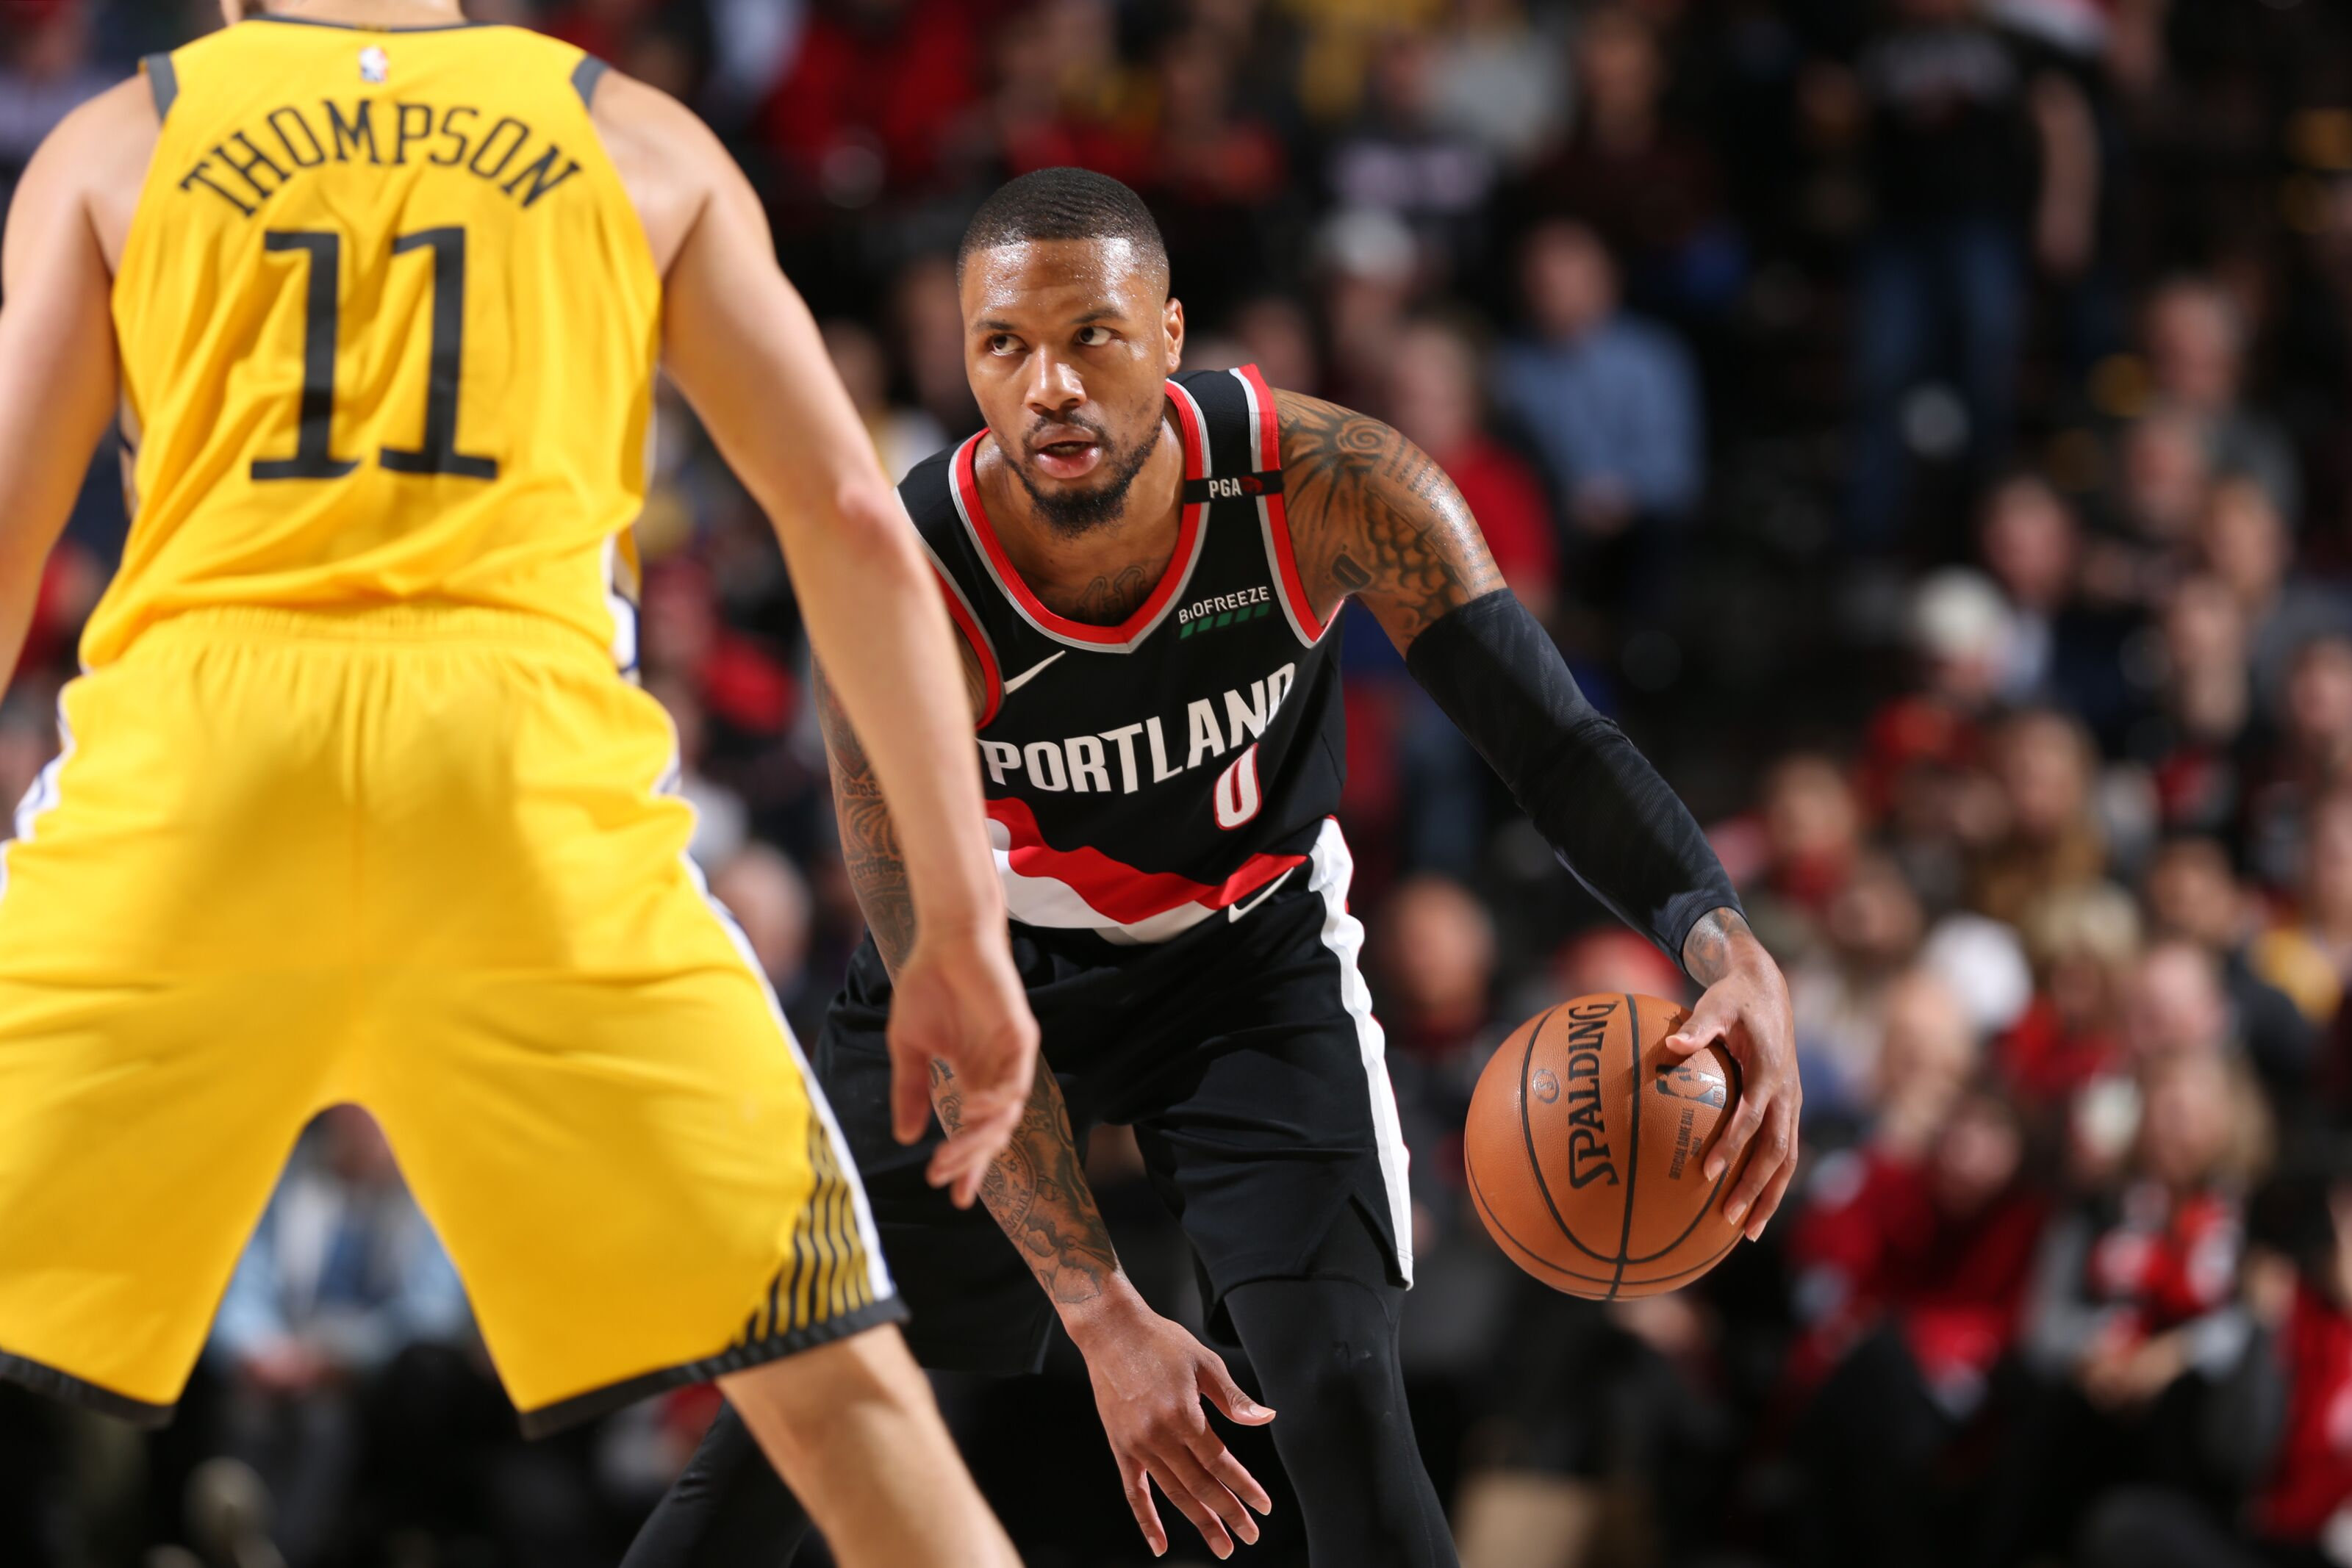 PORTLAND, OR - FEBRUARY 13: Damian Lillard #0 of the Portland Trail Blazers handles the ball against the Golden State Warriors on February 13, 2019 at the Moda Center in Portland, Oregon. NOTE TO USER: User expressly acknowledges and agrees that, by downloading and/or using this photograph, user is consenting to the terms and conditions of the Getty Images License Agreement. Mandatory Copyright Notice: Copyright 2019 NBAE (Photo by Sam Forencich/NBAE via Getty Images)